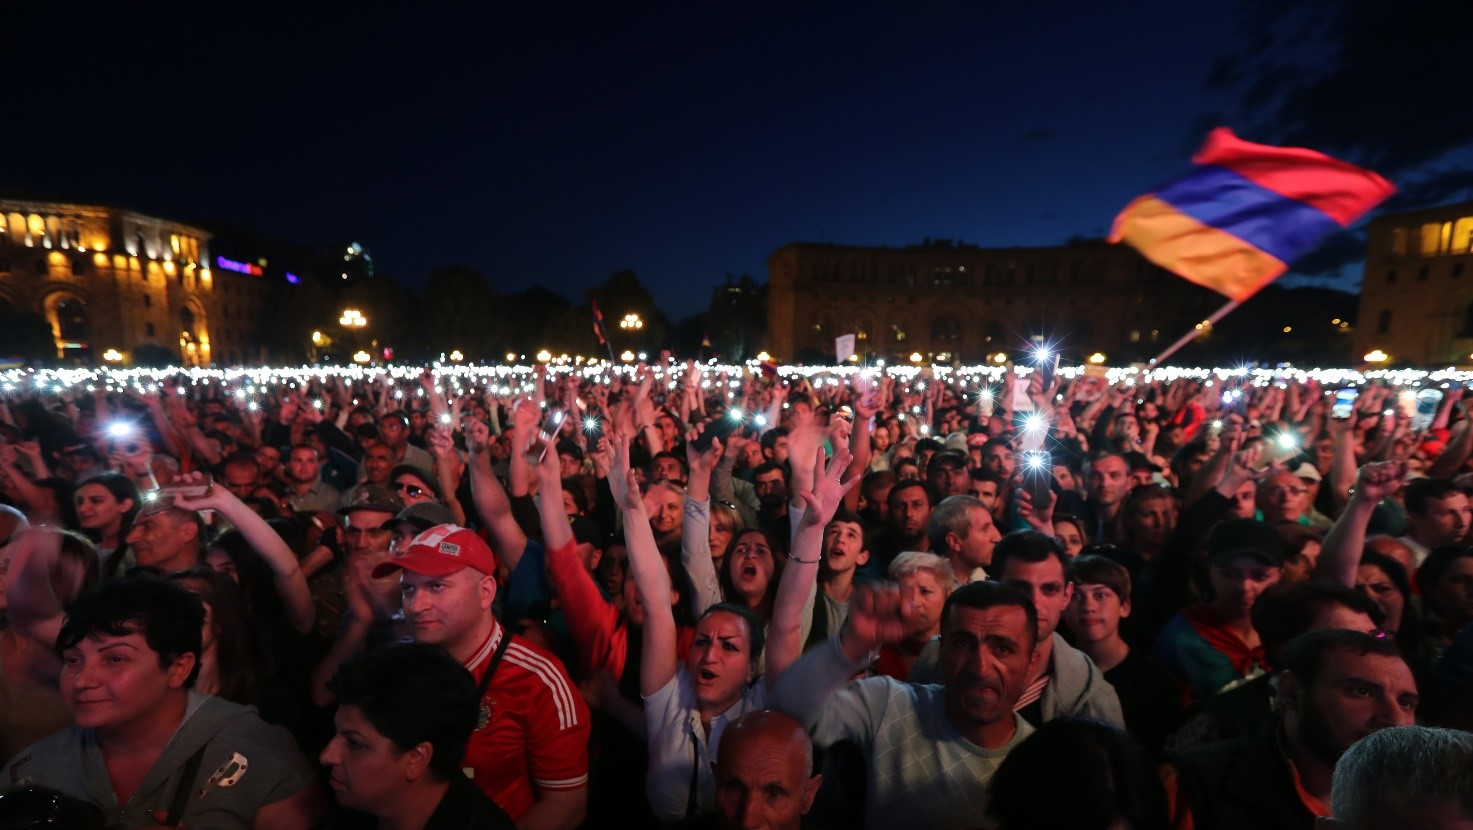 Credit:  https://warsawinstitute.org/wp-content/uploads/2018/06/May-2018.-Armenian-people-attend-an-opposition-rally-in-Yerevan-Armenia..jpg